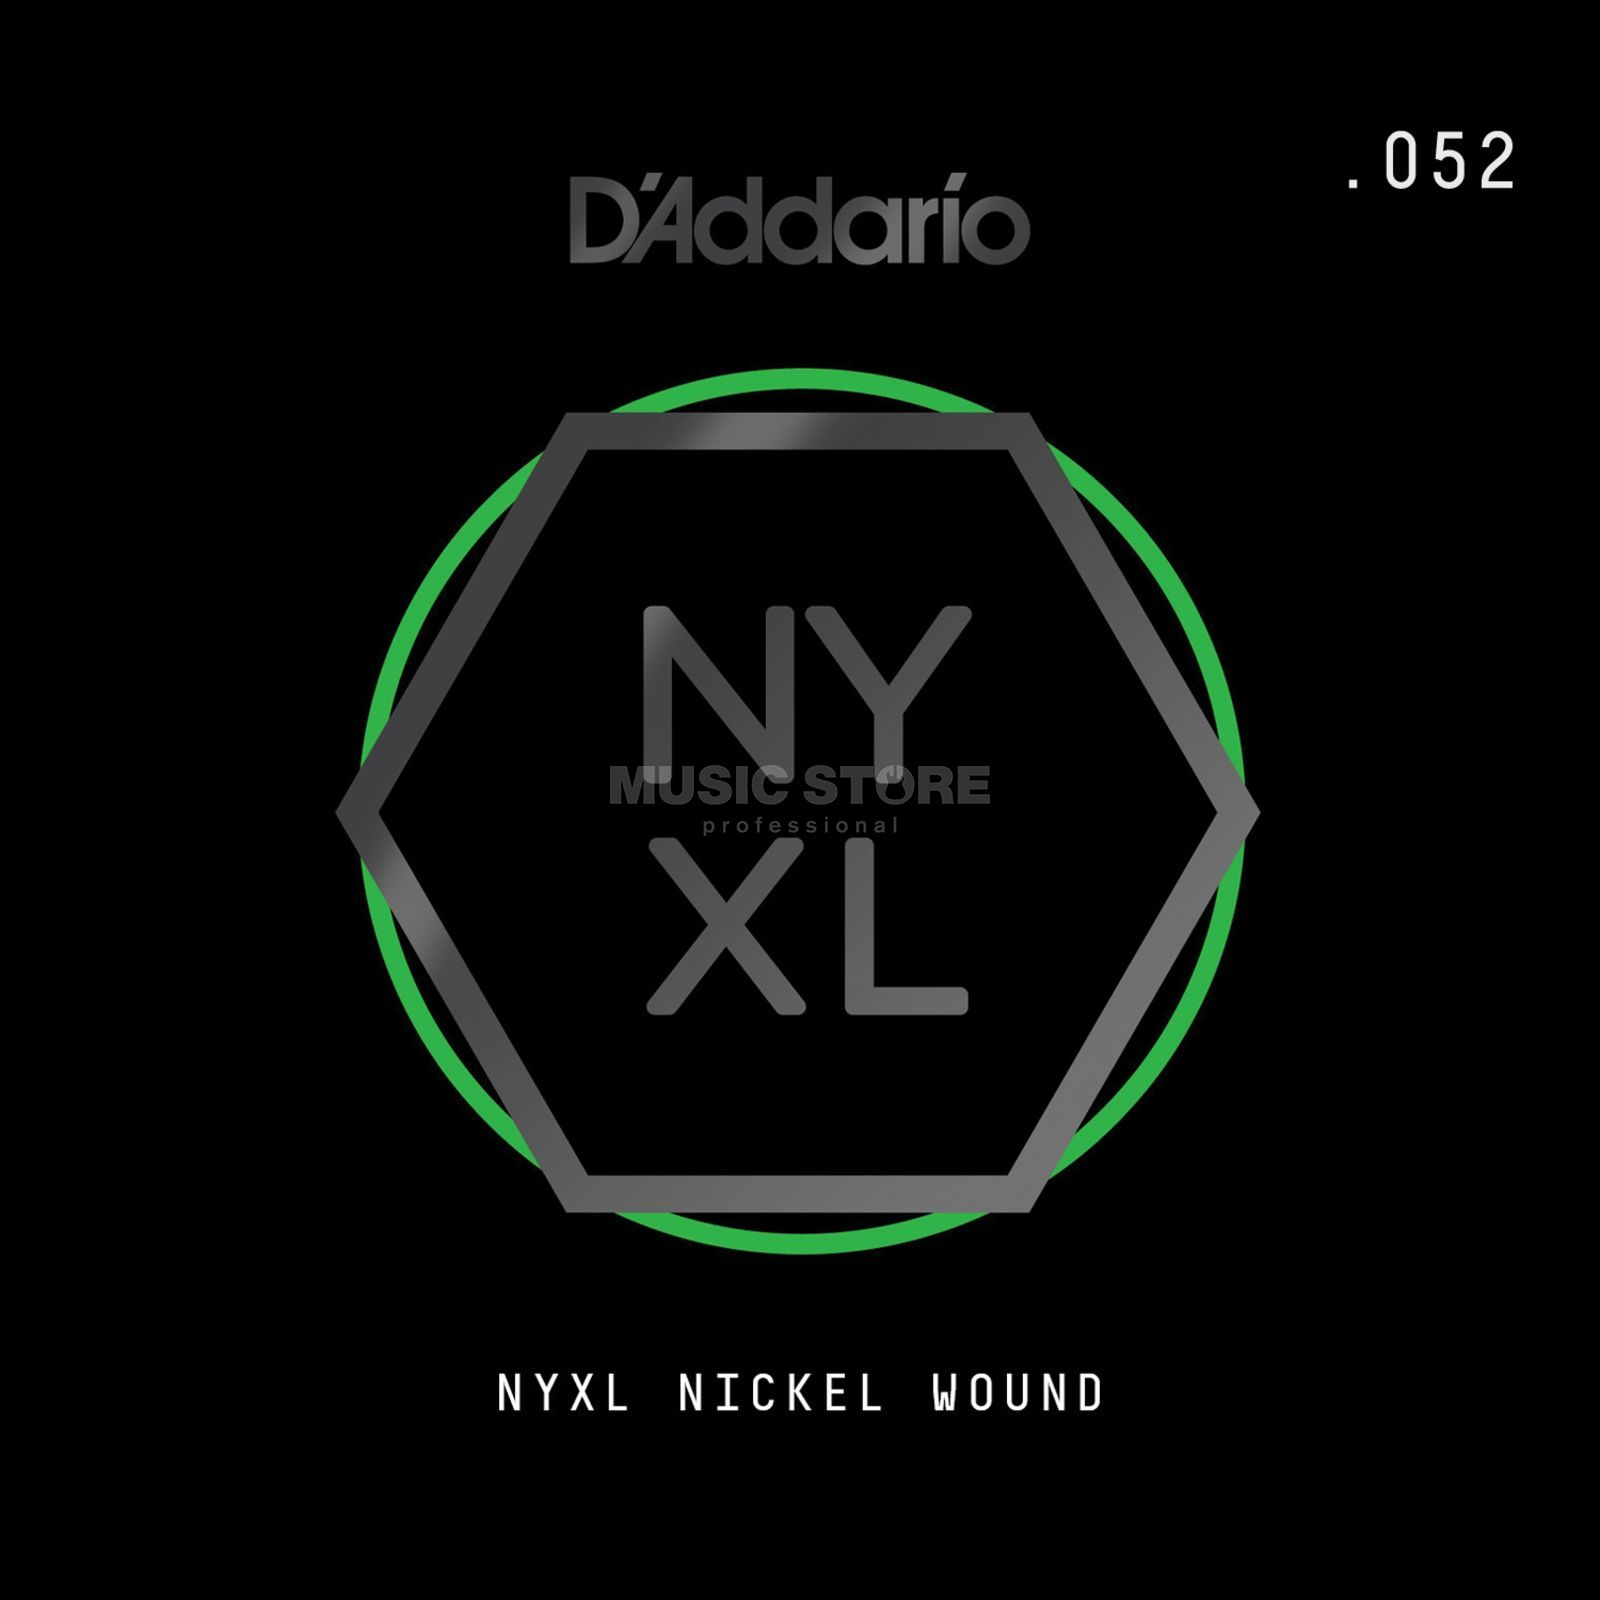 D'Addario NYNW052 Single String Nickel Wound Product Image